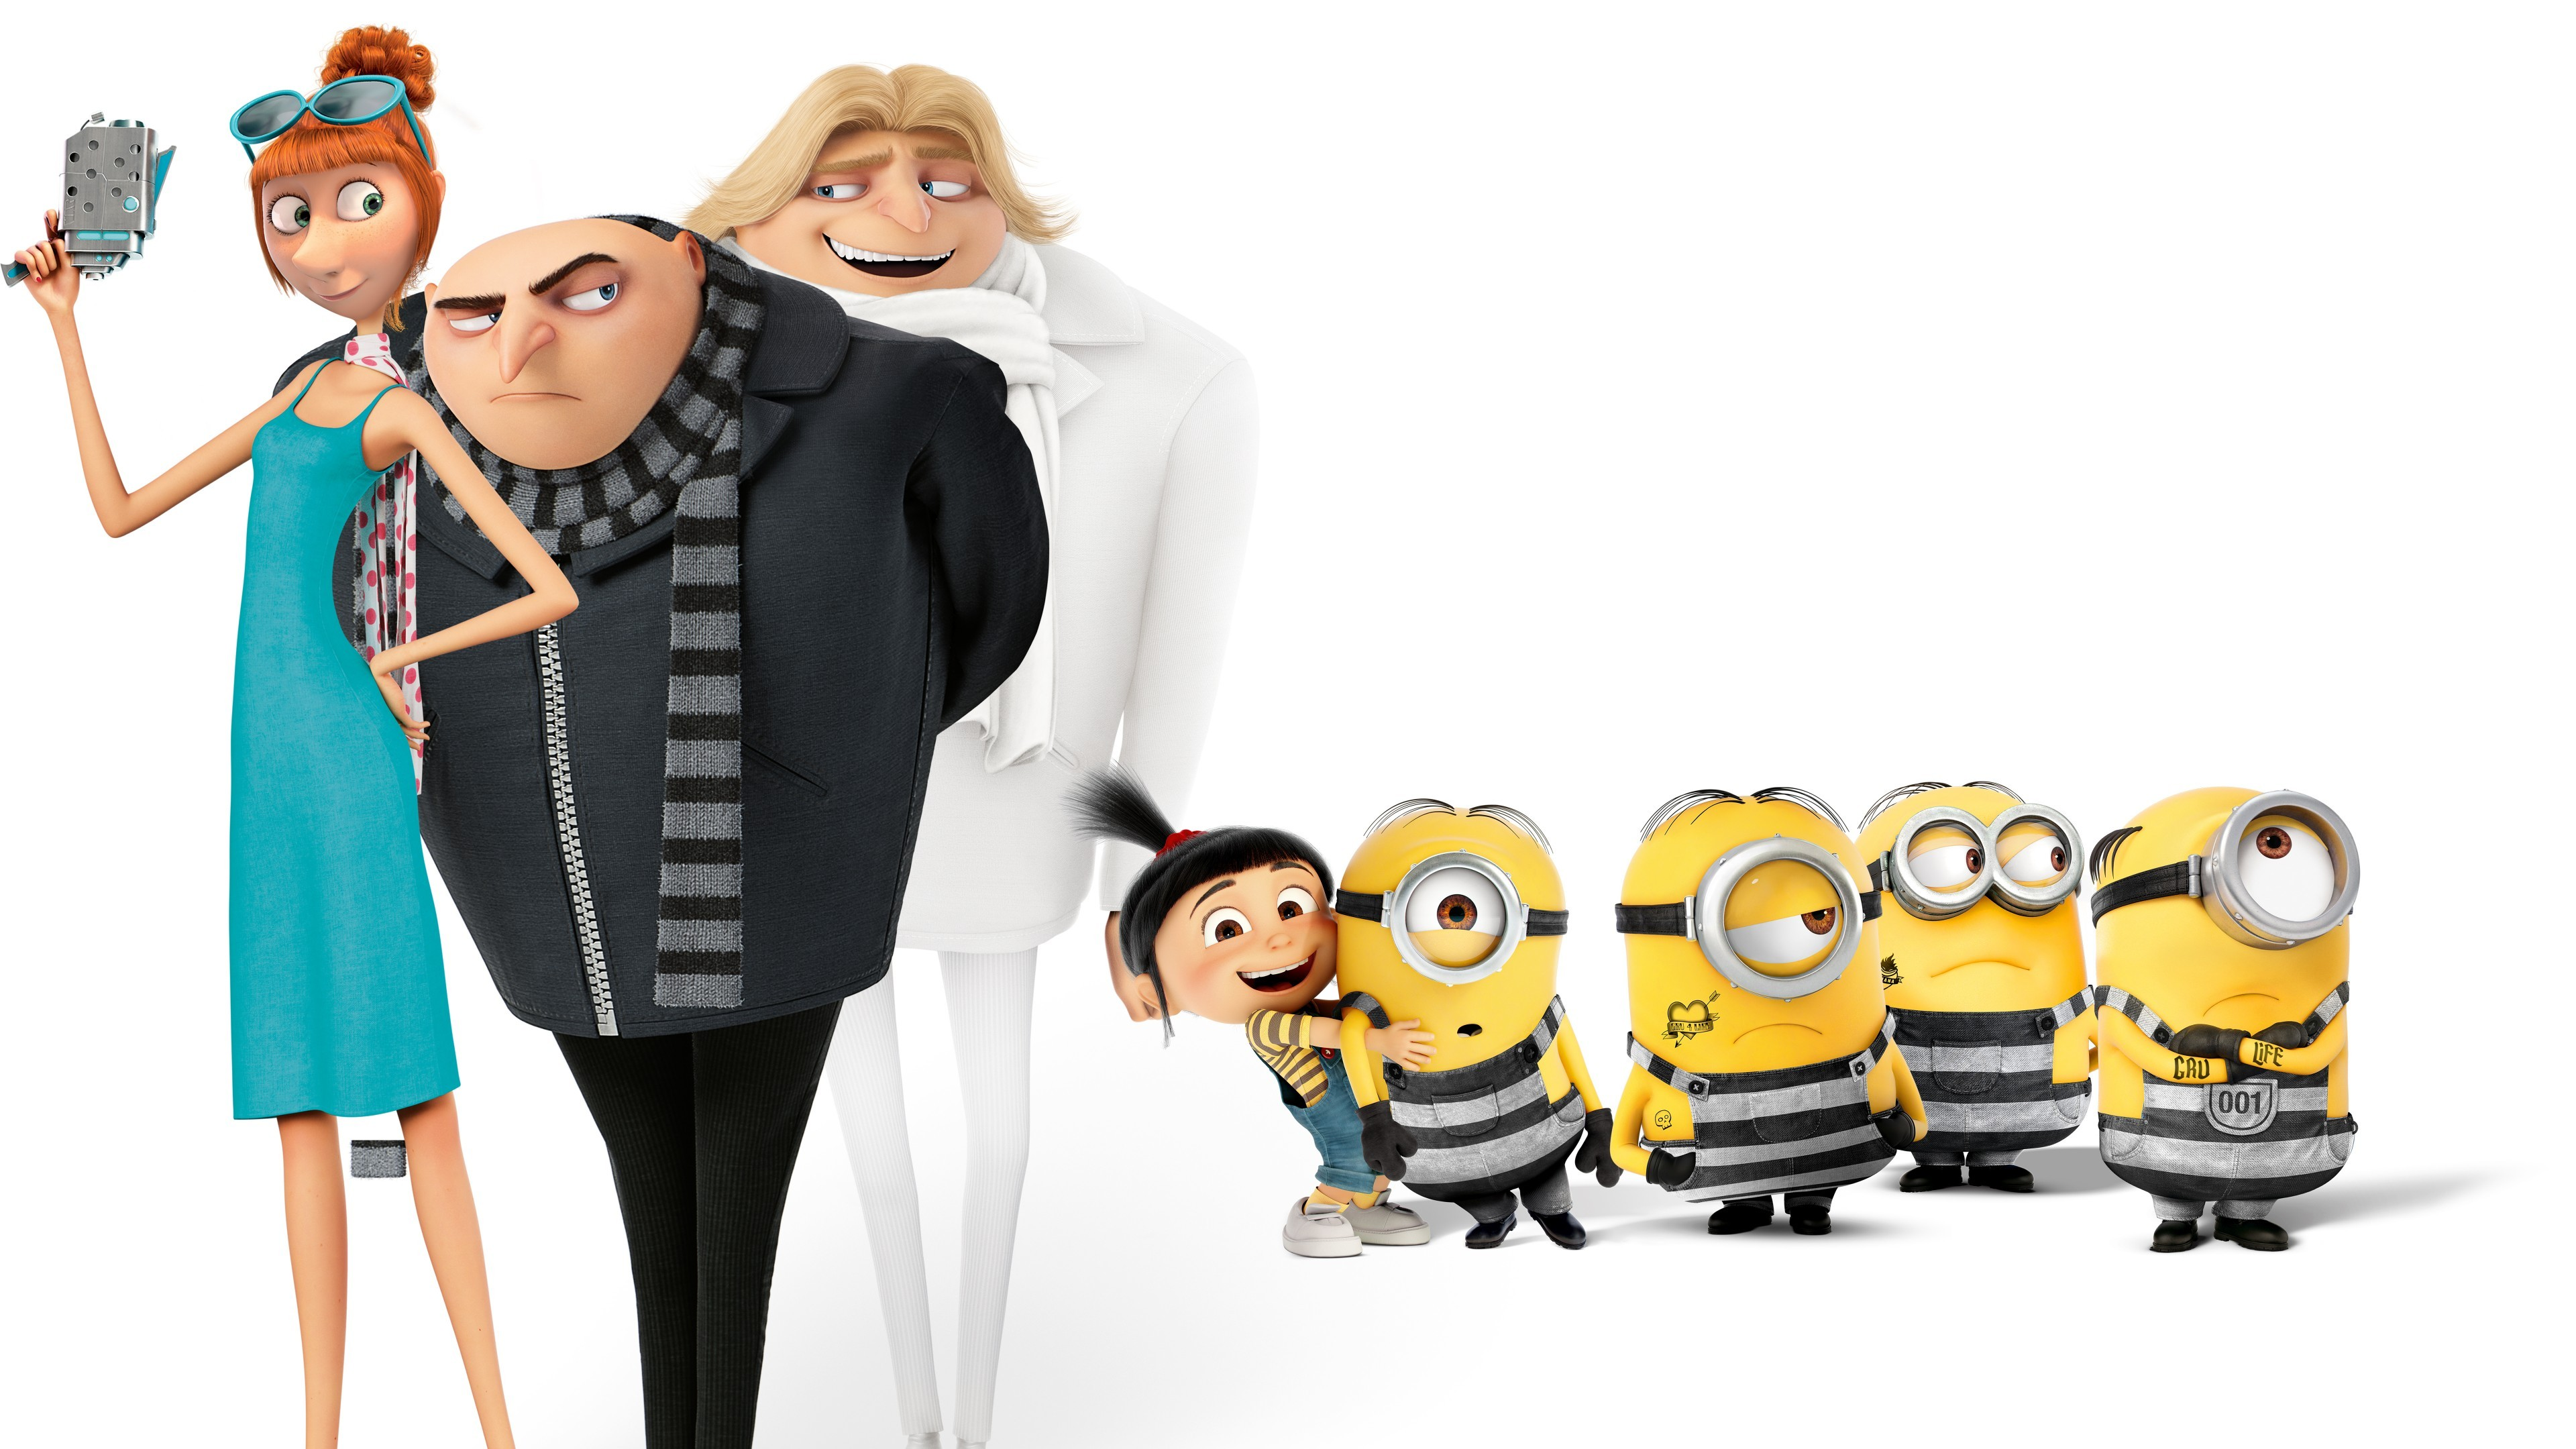 Wallpaper Despicable Me 3 Dru Gru 4k Poster Movies 13680